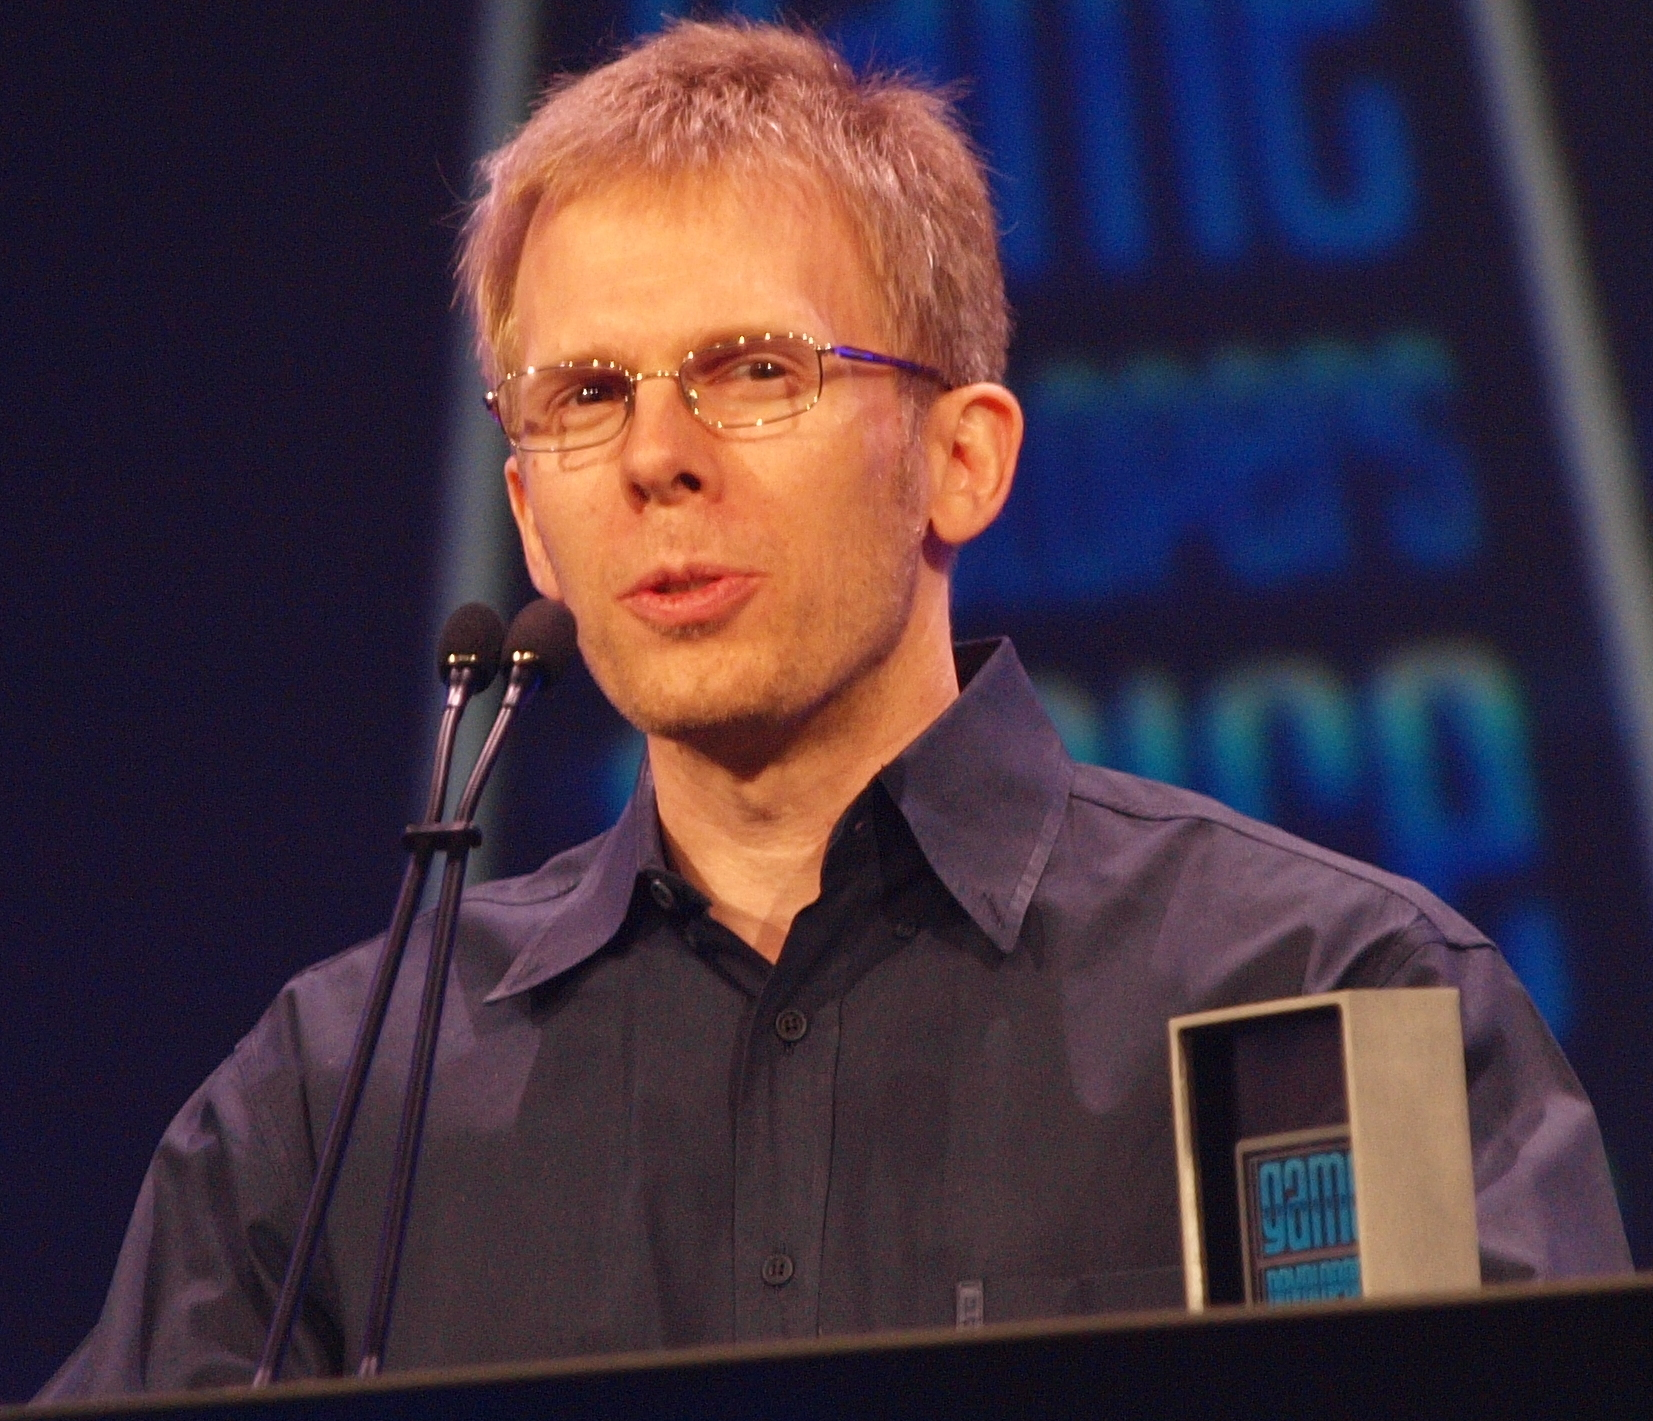 The 49-year old son of father (?) and mother(?) John Carmack in 2019 photo. John Carmack earned a  million dollar salary - leaving the net worth at  million in 2019